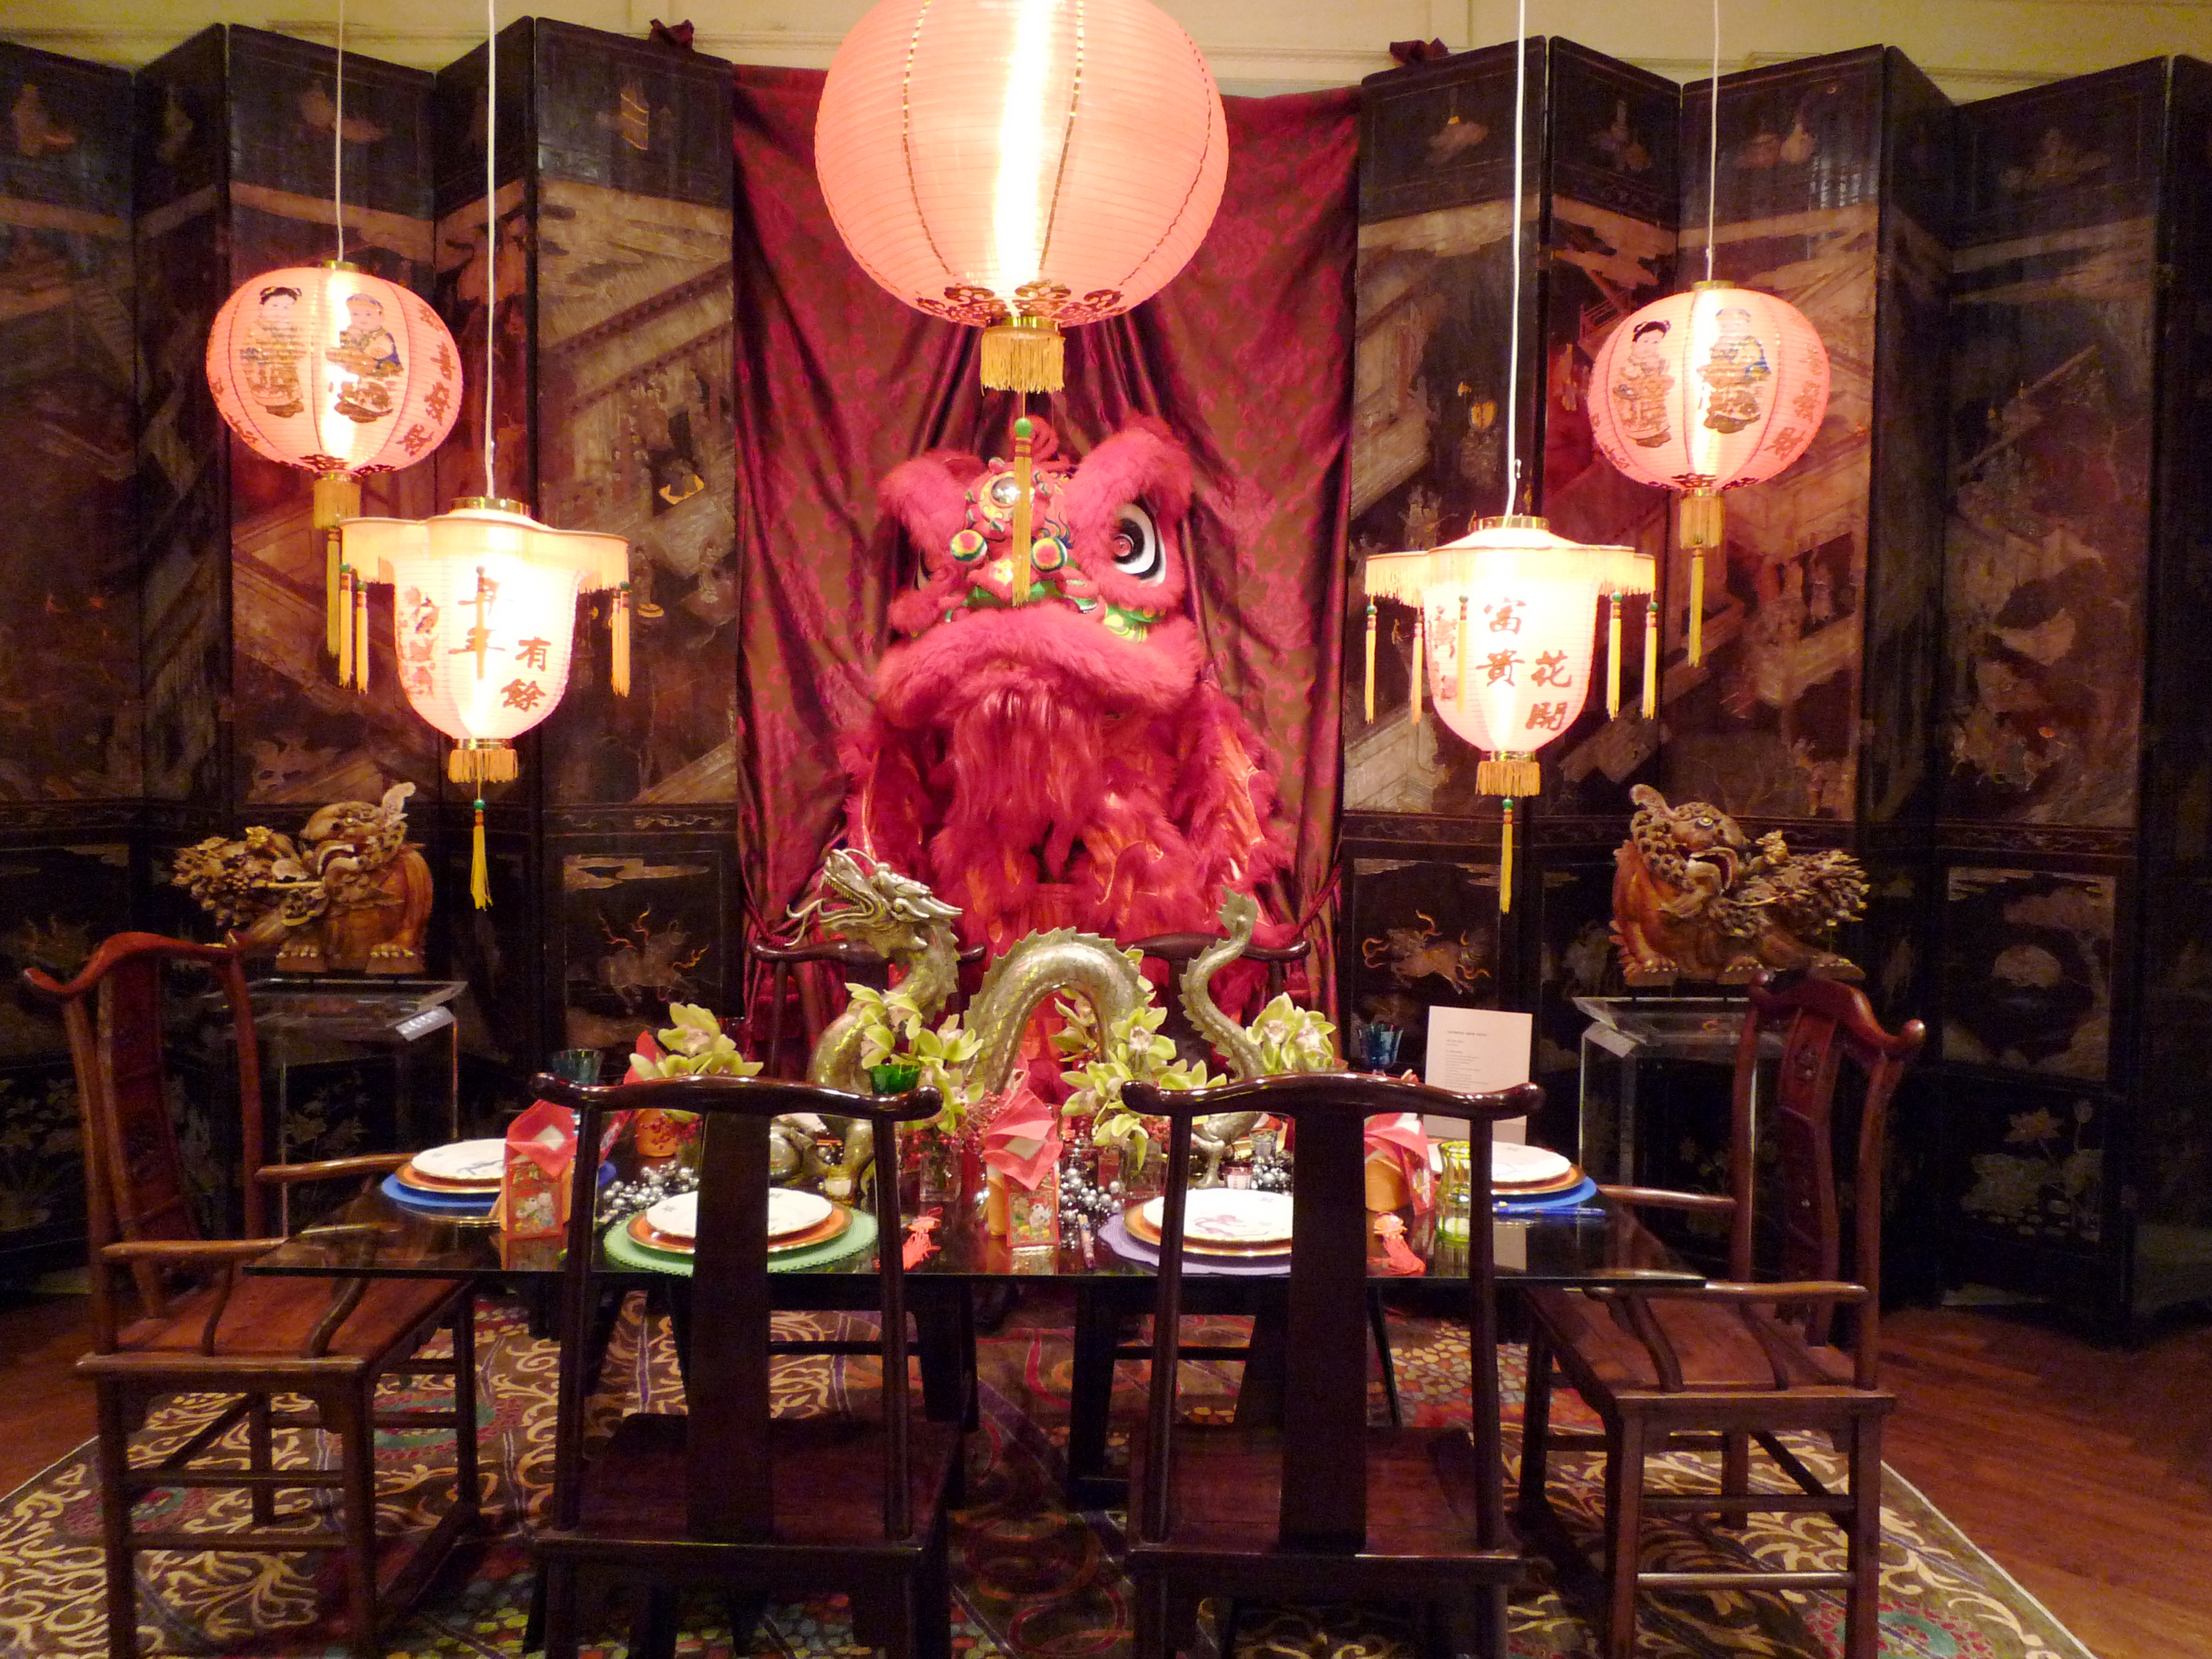 Chinese Dragon Decor 10 Ideas To Prove Not All Cny Decorations Are Tacky